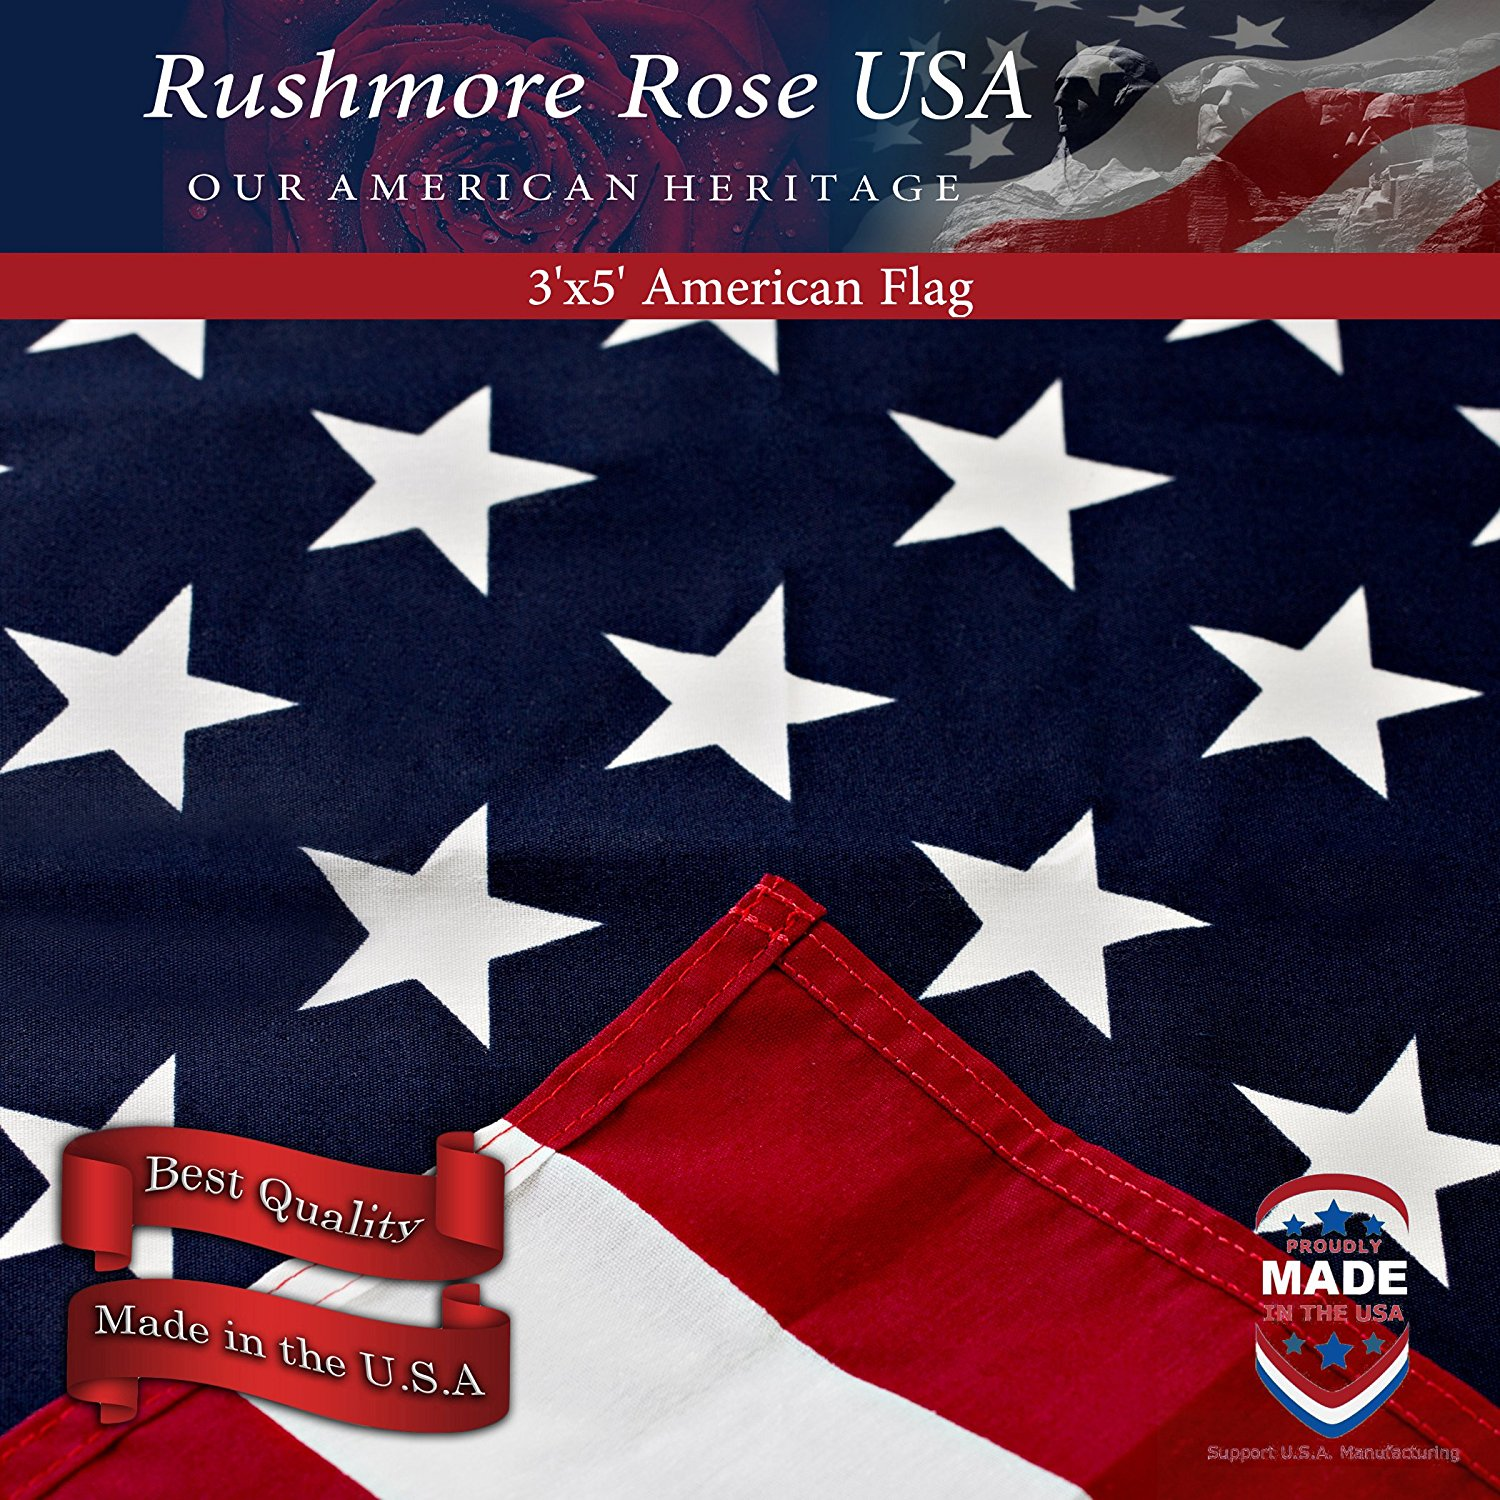 Amazon.com : Rushmore Rose USA American Flag - US Flag 3x5 - Made in ...